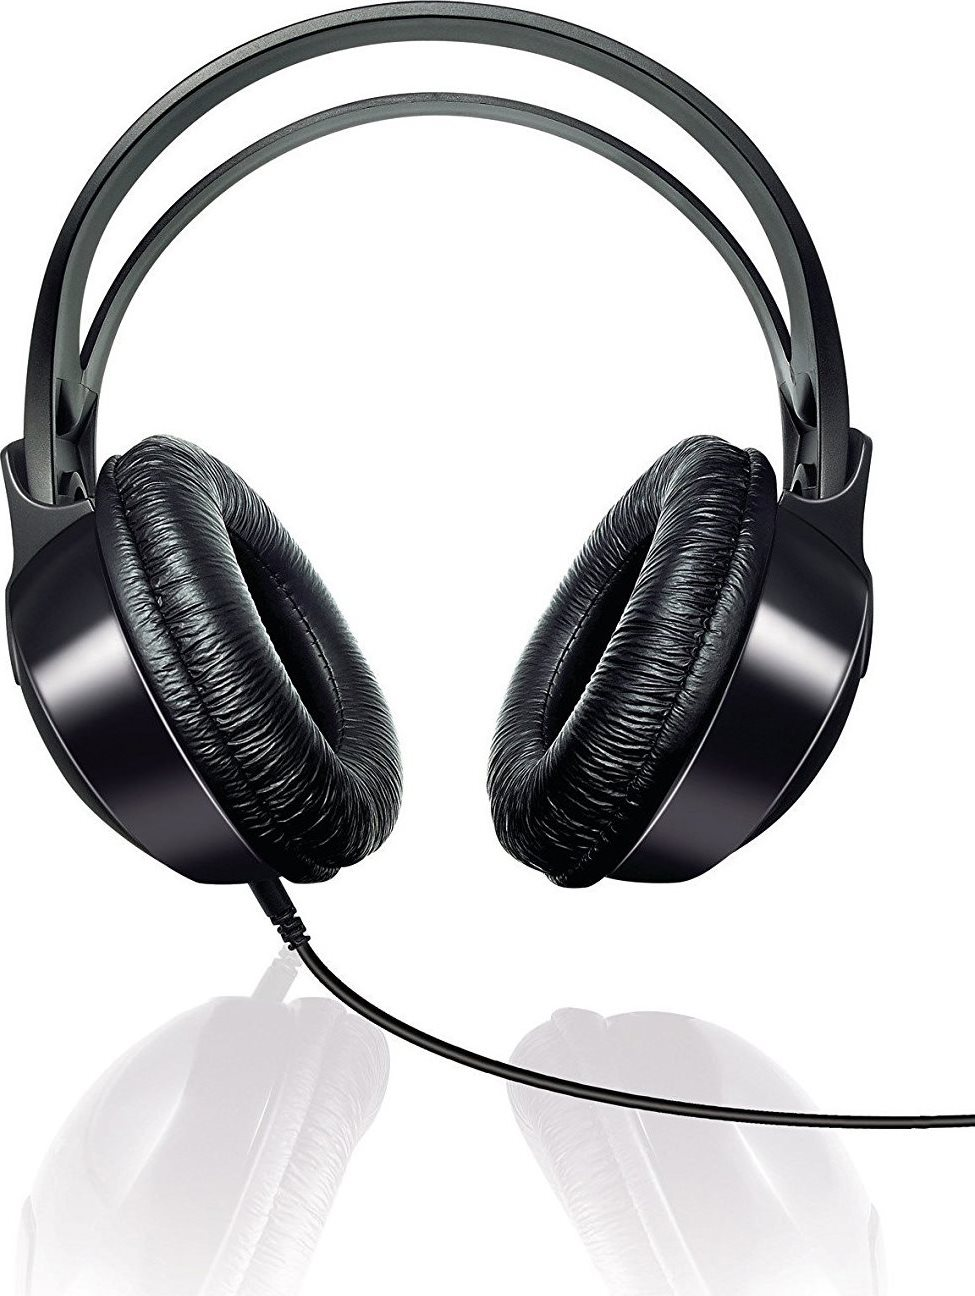 PHILIPS Cuffie Stereo Mp3 Shp1900